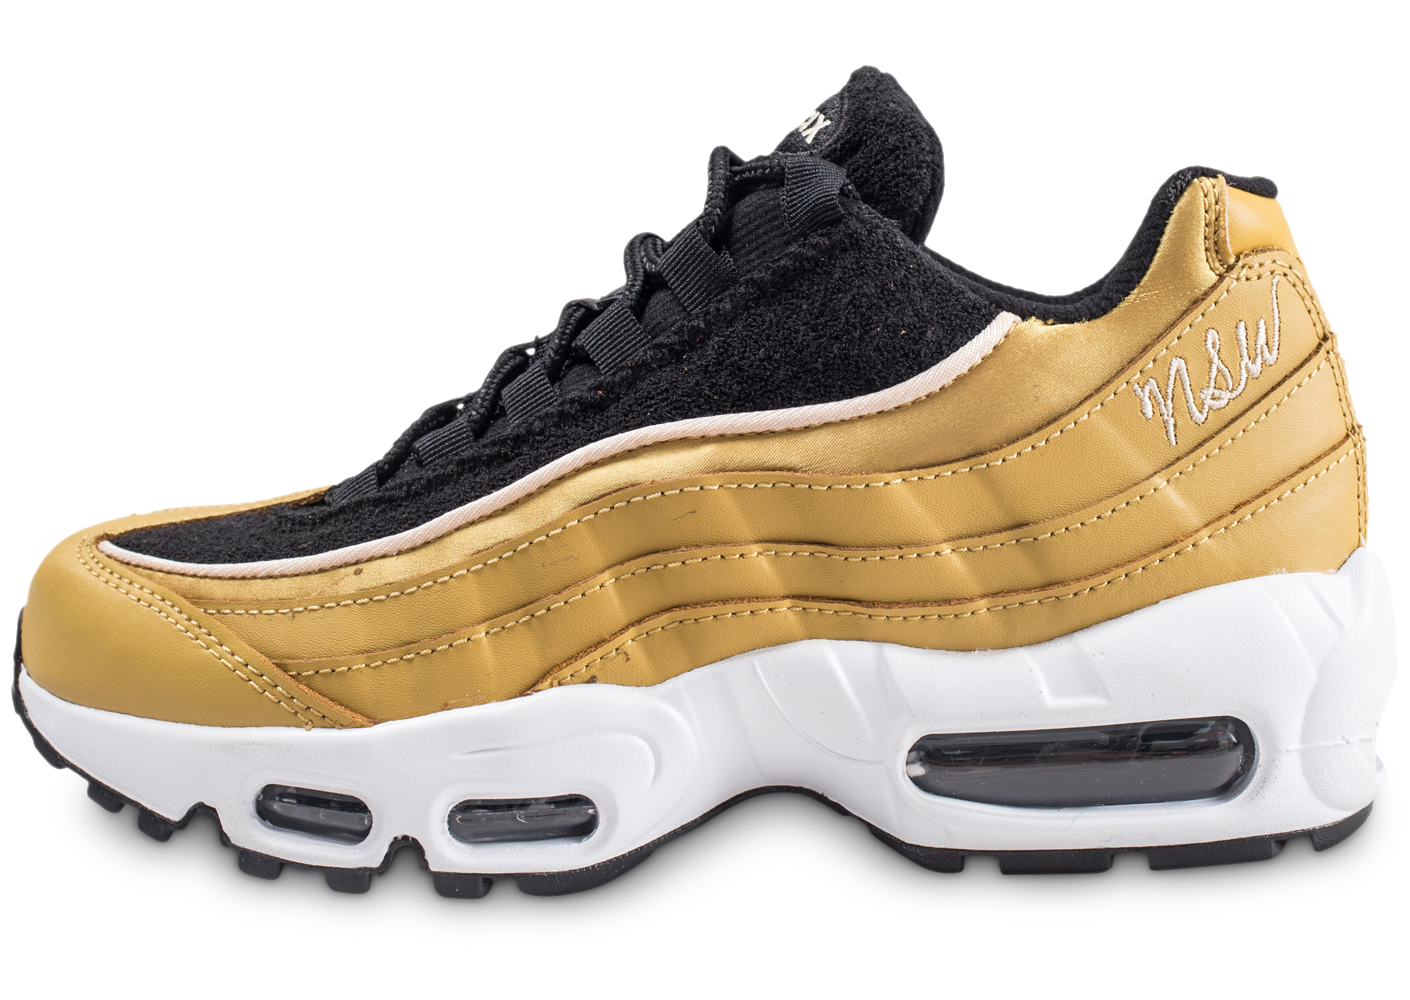 new style 6094a b388f Nike air max 95 lx or femme baskets streetwear